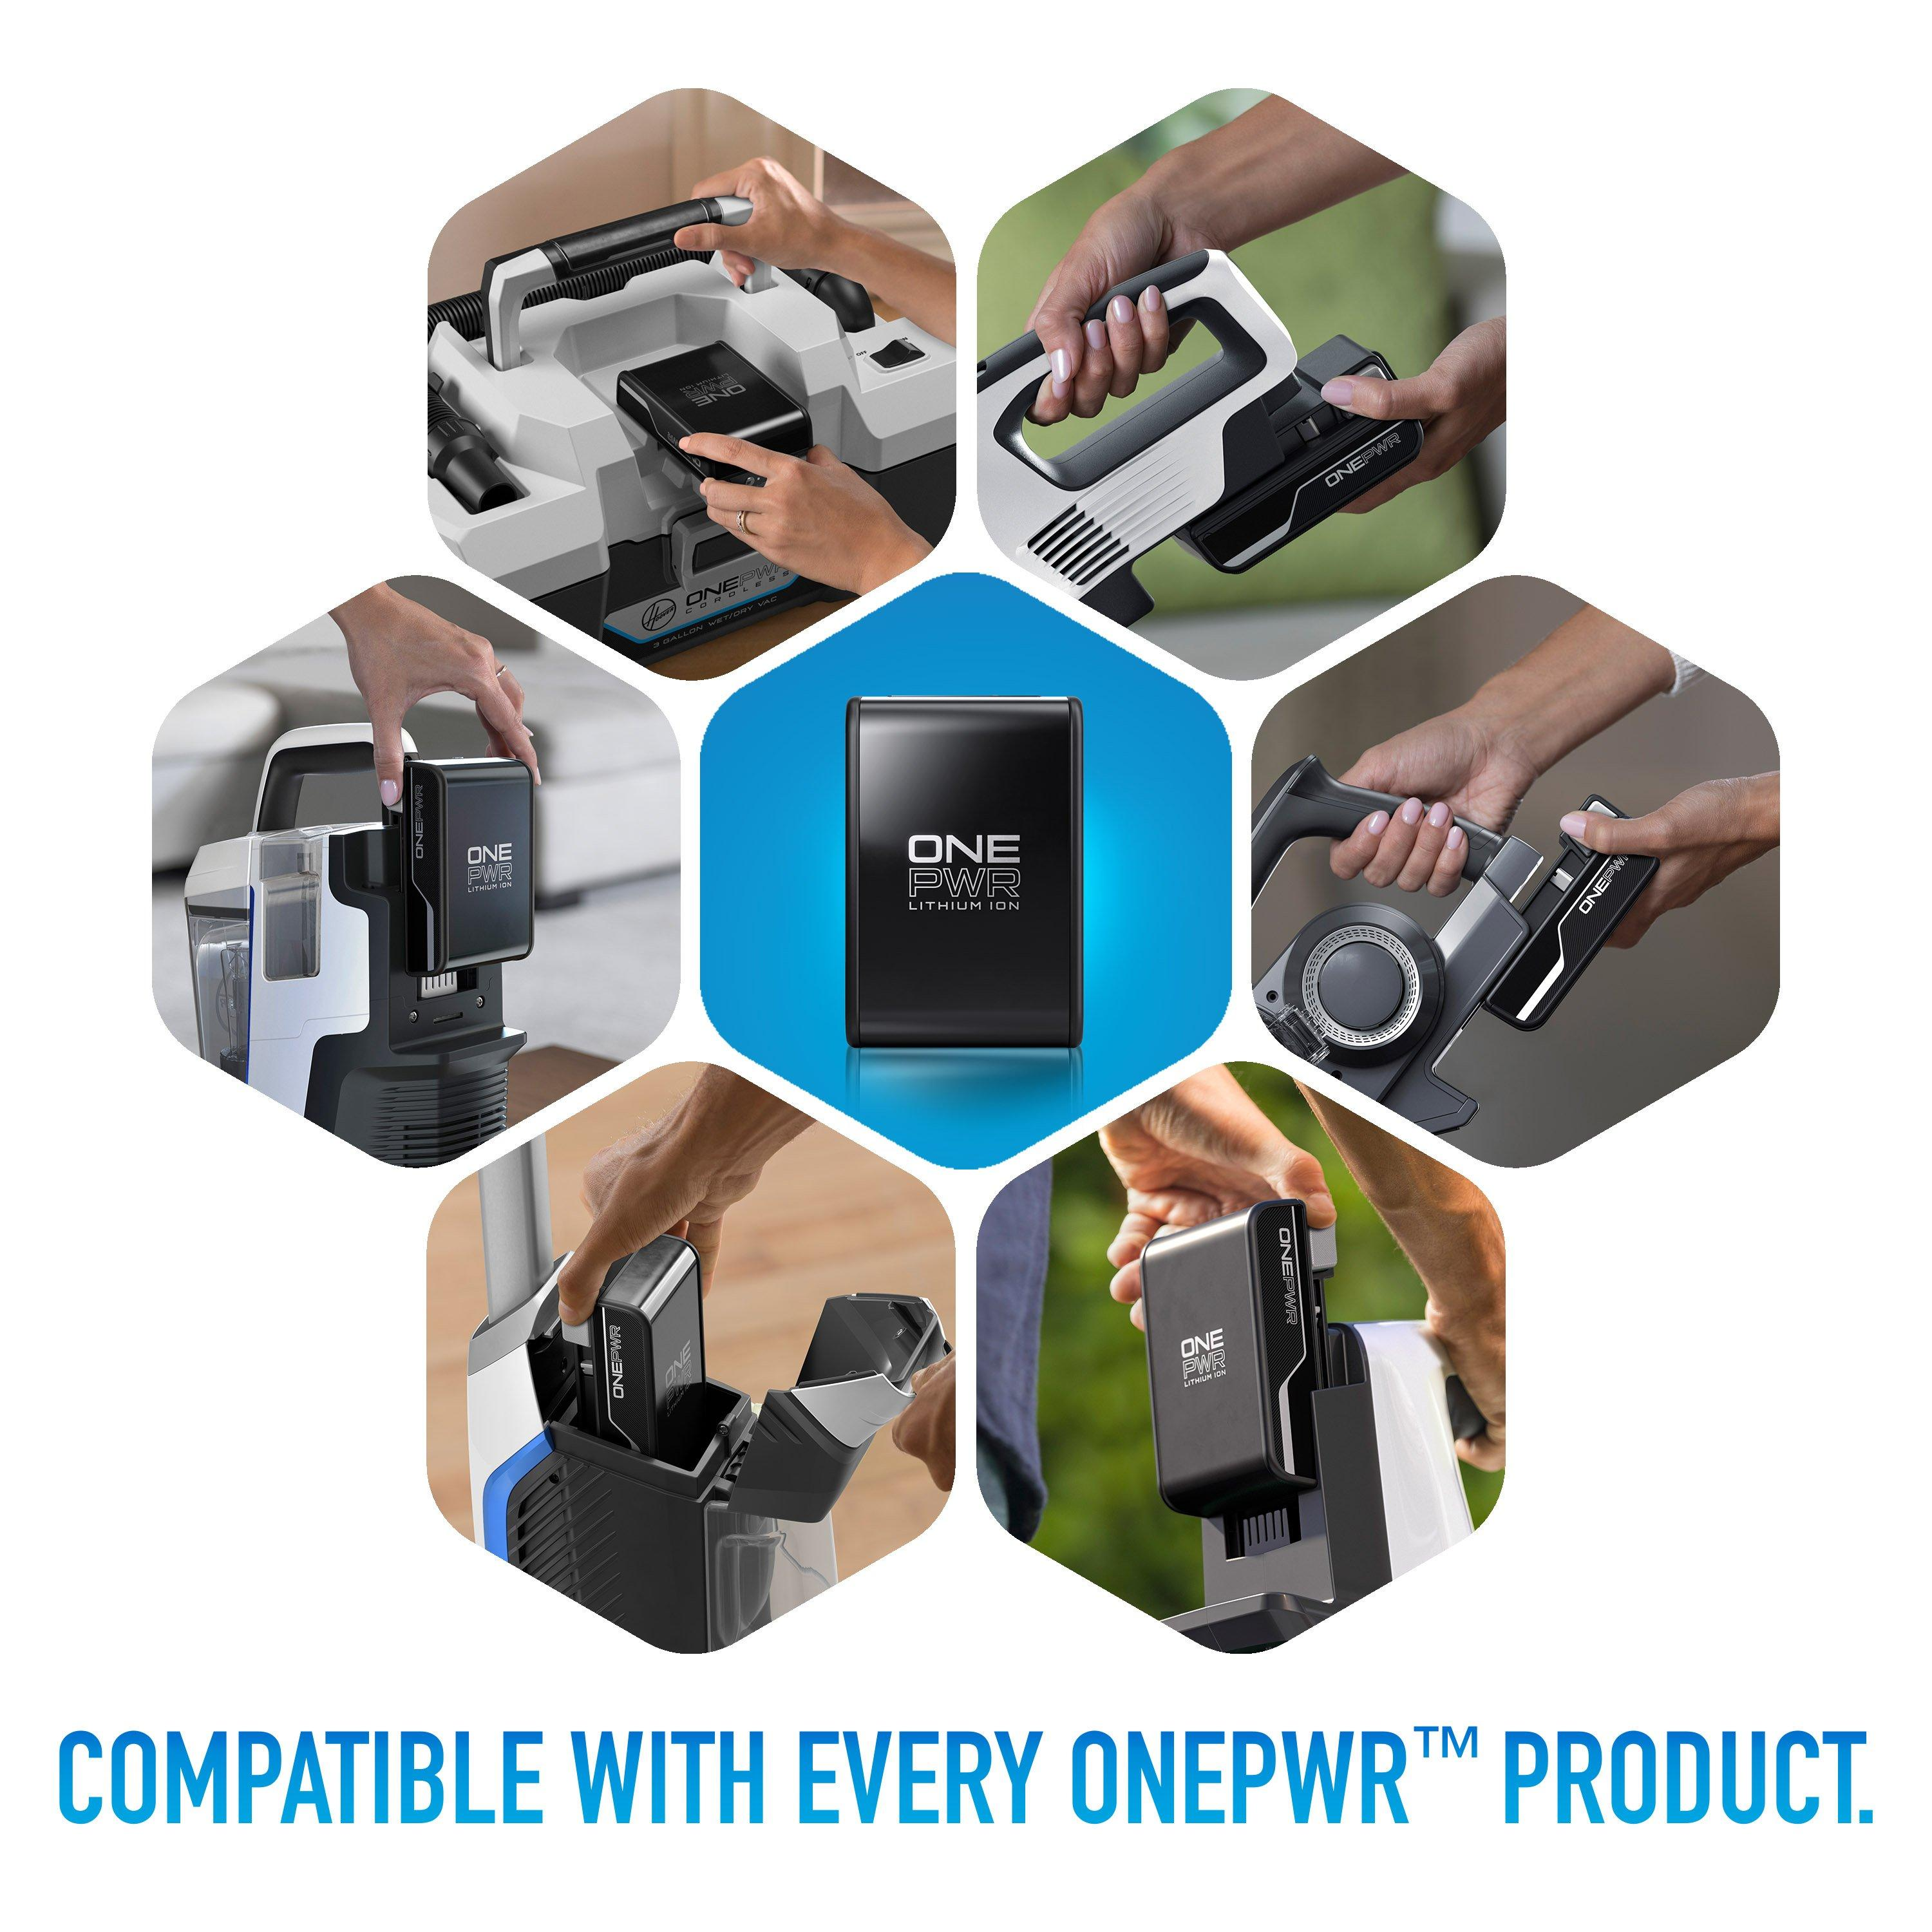 ONEPWR 4.0 Ah MAX Lithium-Ion Battery6